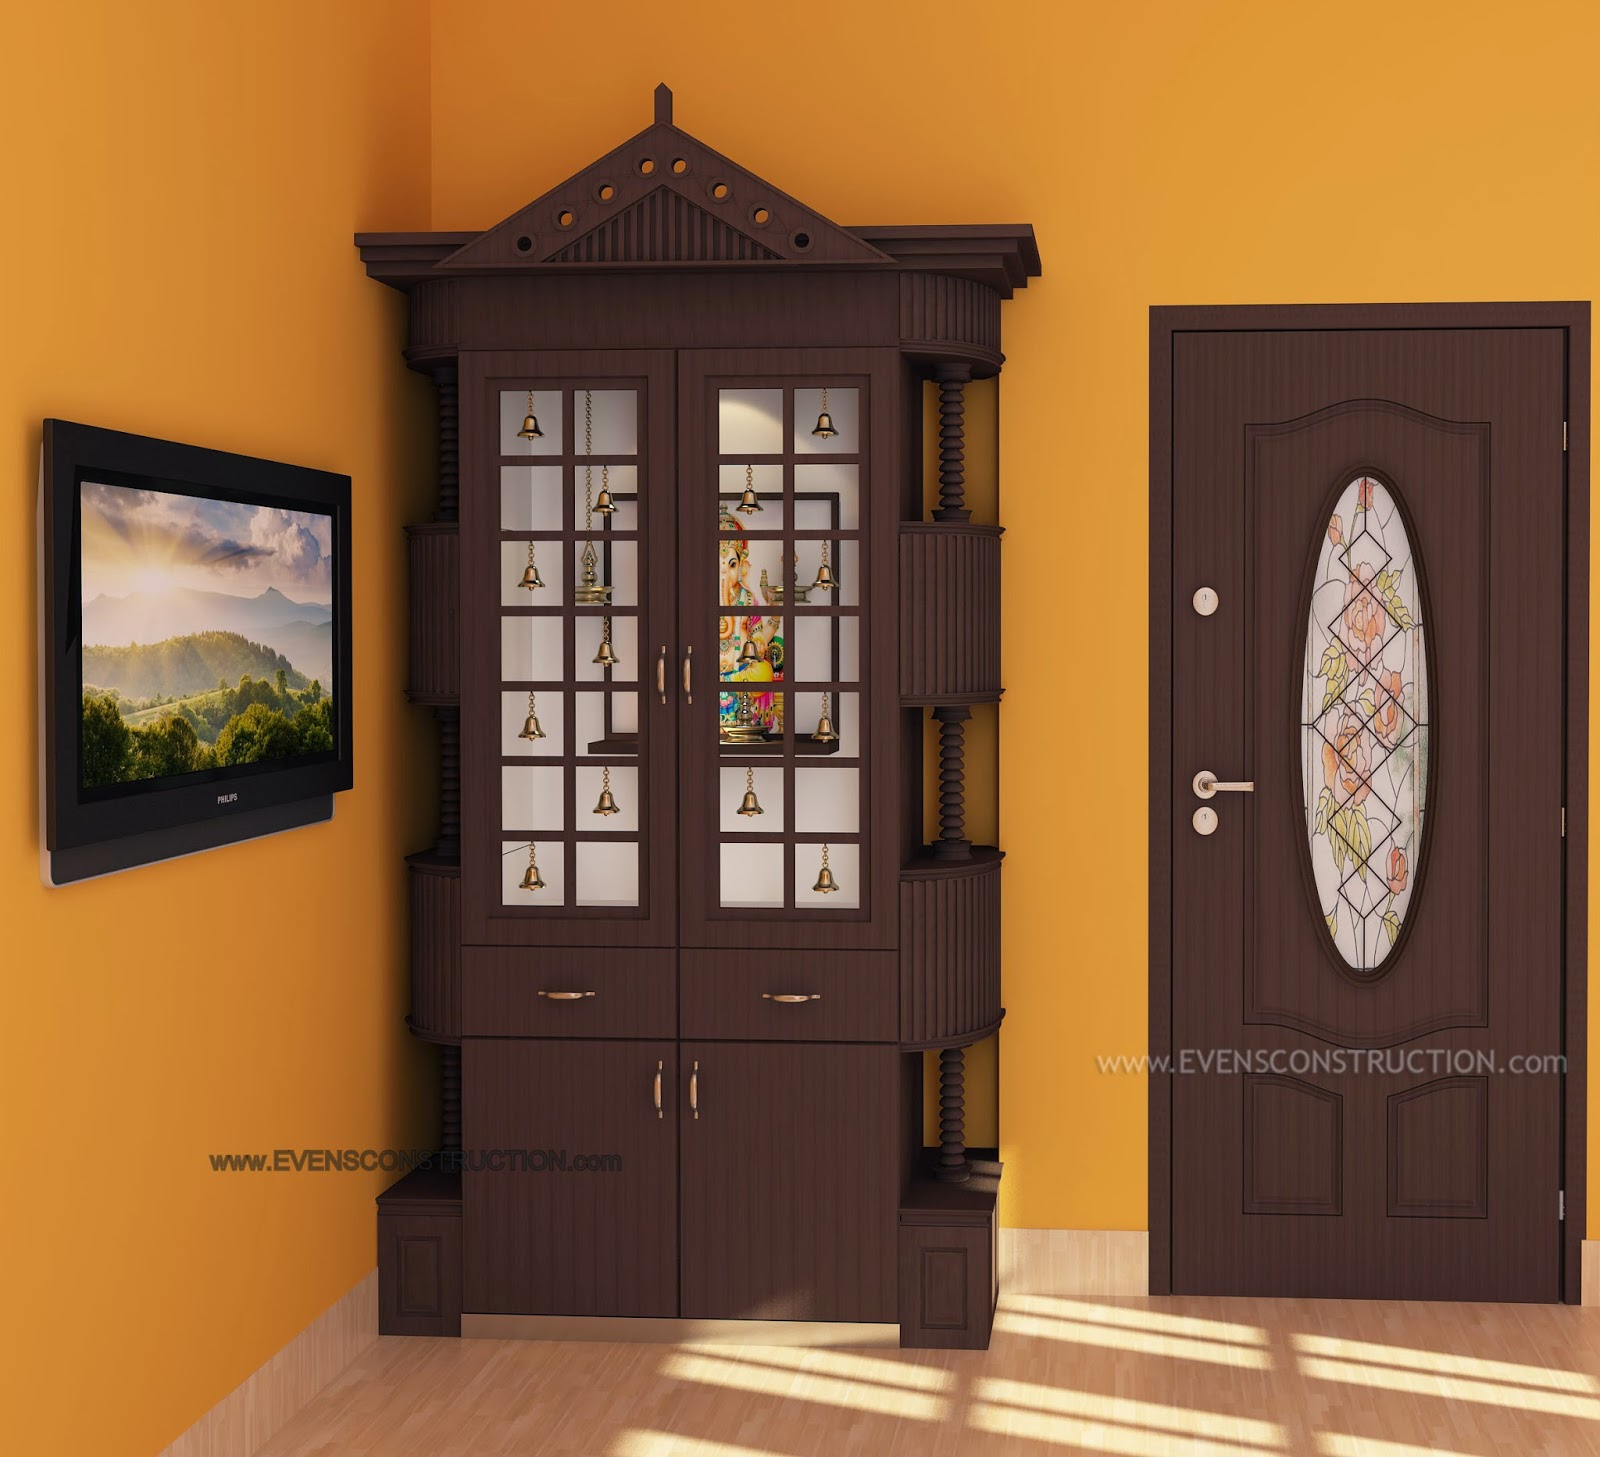 Wall Mounted Pooja Mandir Designs Google Search Projects To Pooja. God Room  Door Designs Part 43